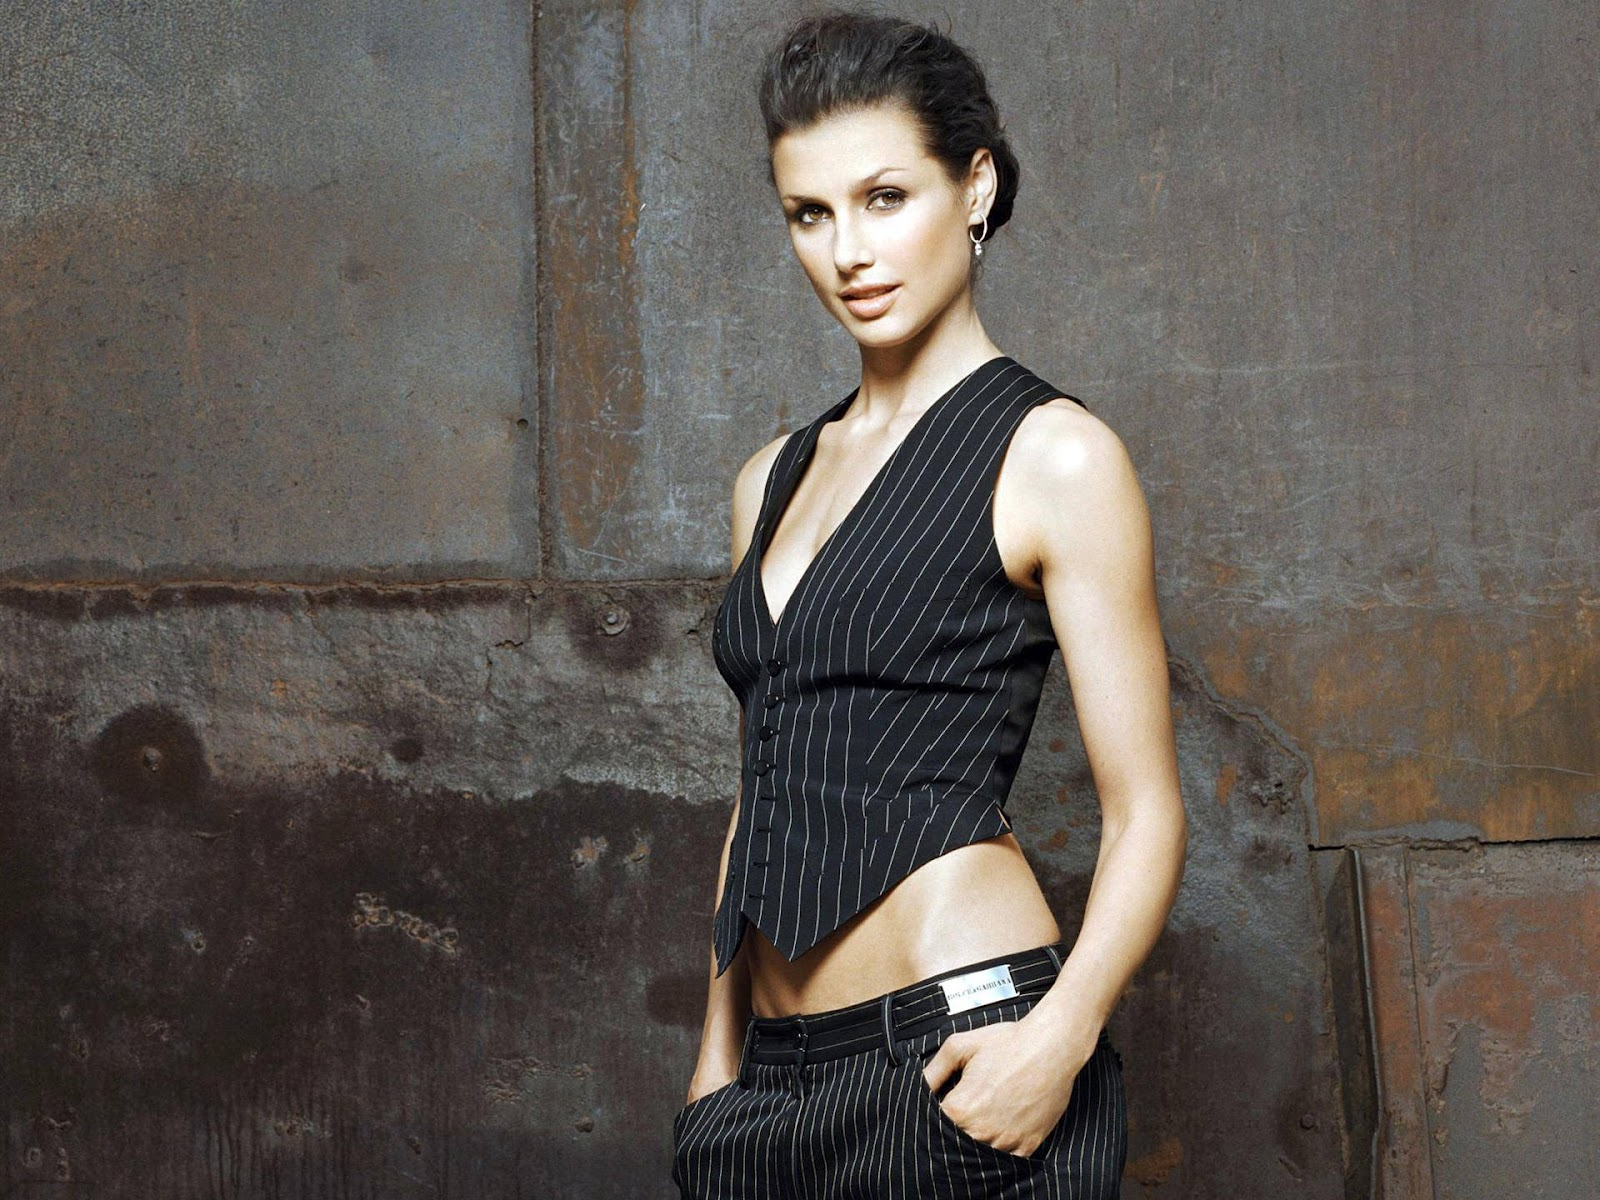 Bridget Moynahan  American Nude Girls Hot-4192